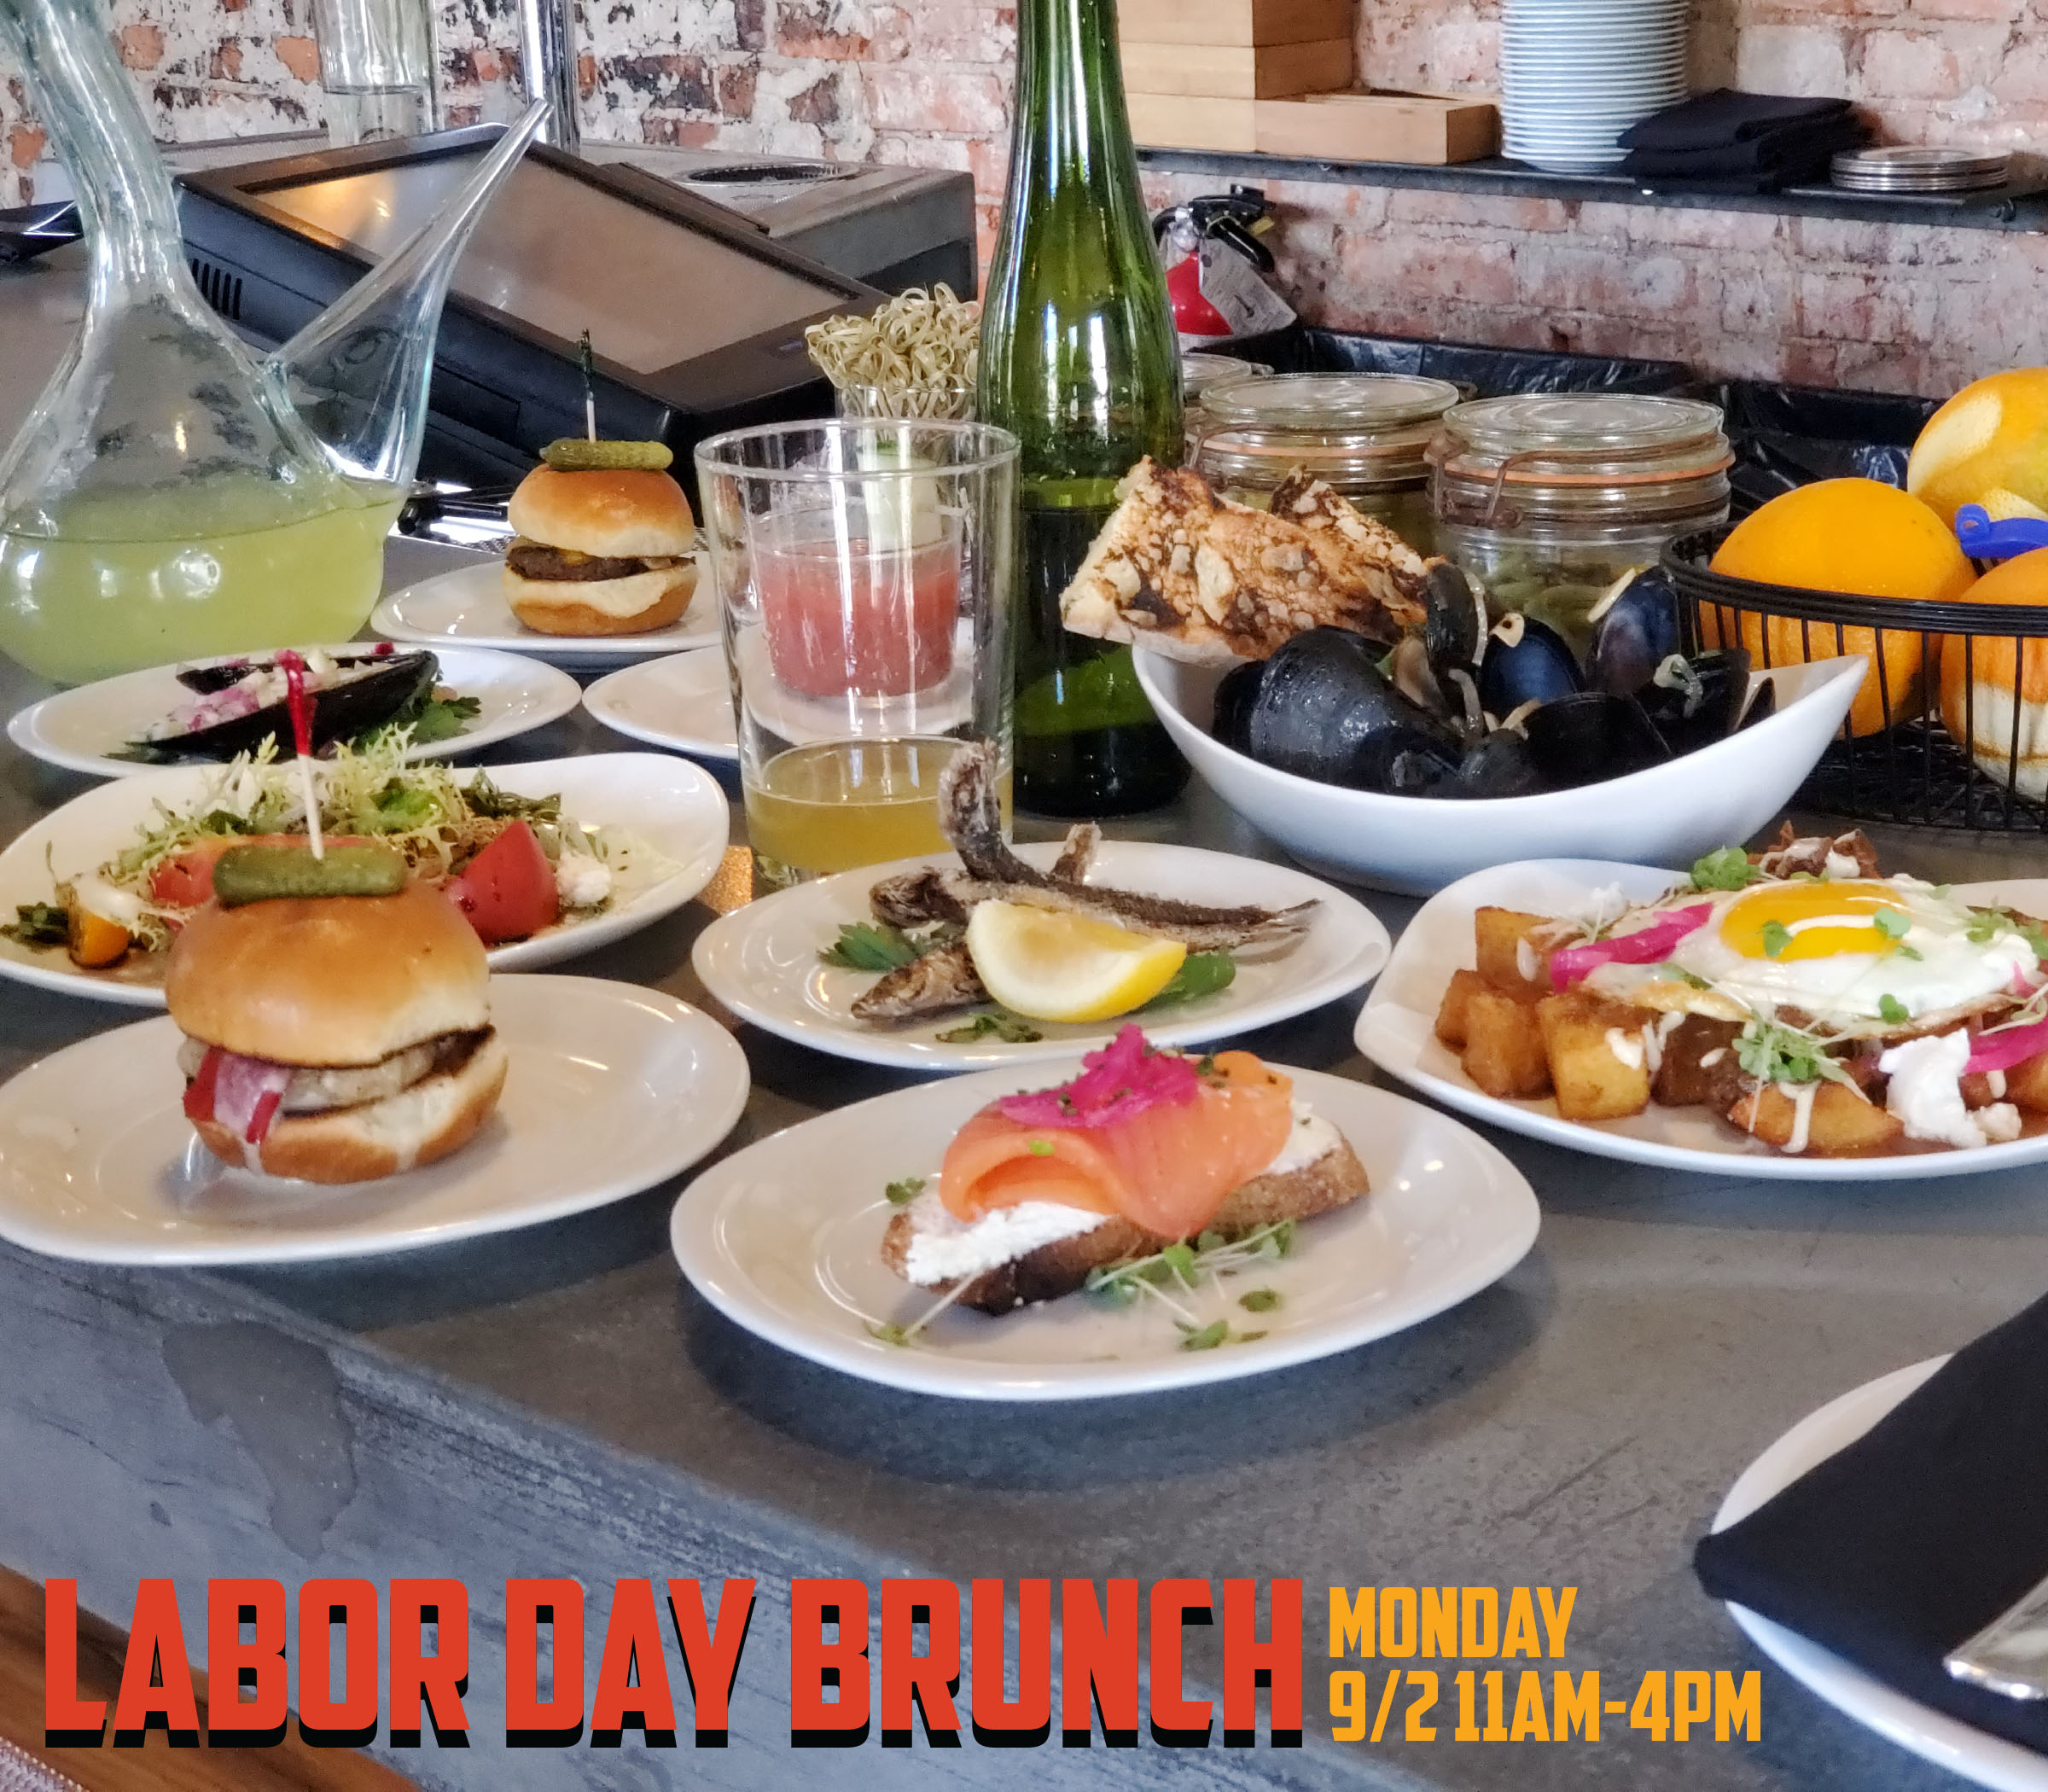 We are open for Labor Day Brunch from 11am-4pm Monday, September 2nd followed by extended Happy Hour from 4-6:30!